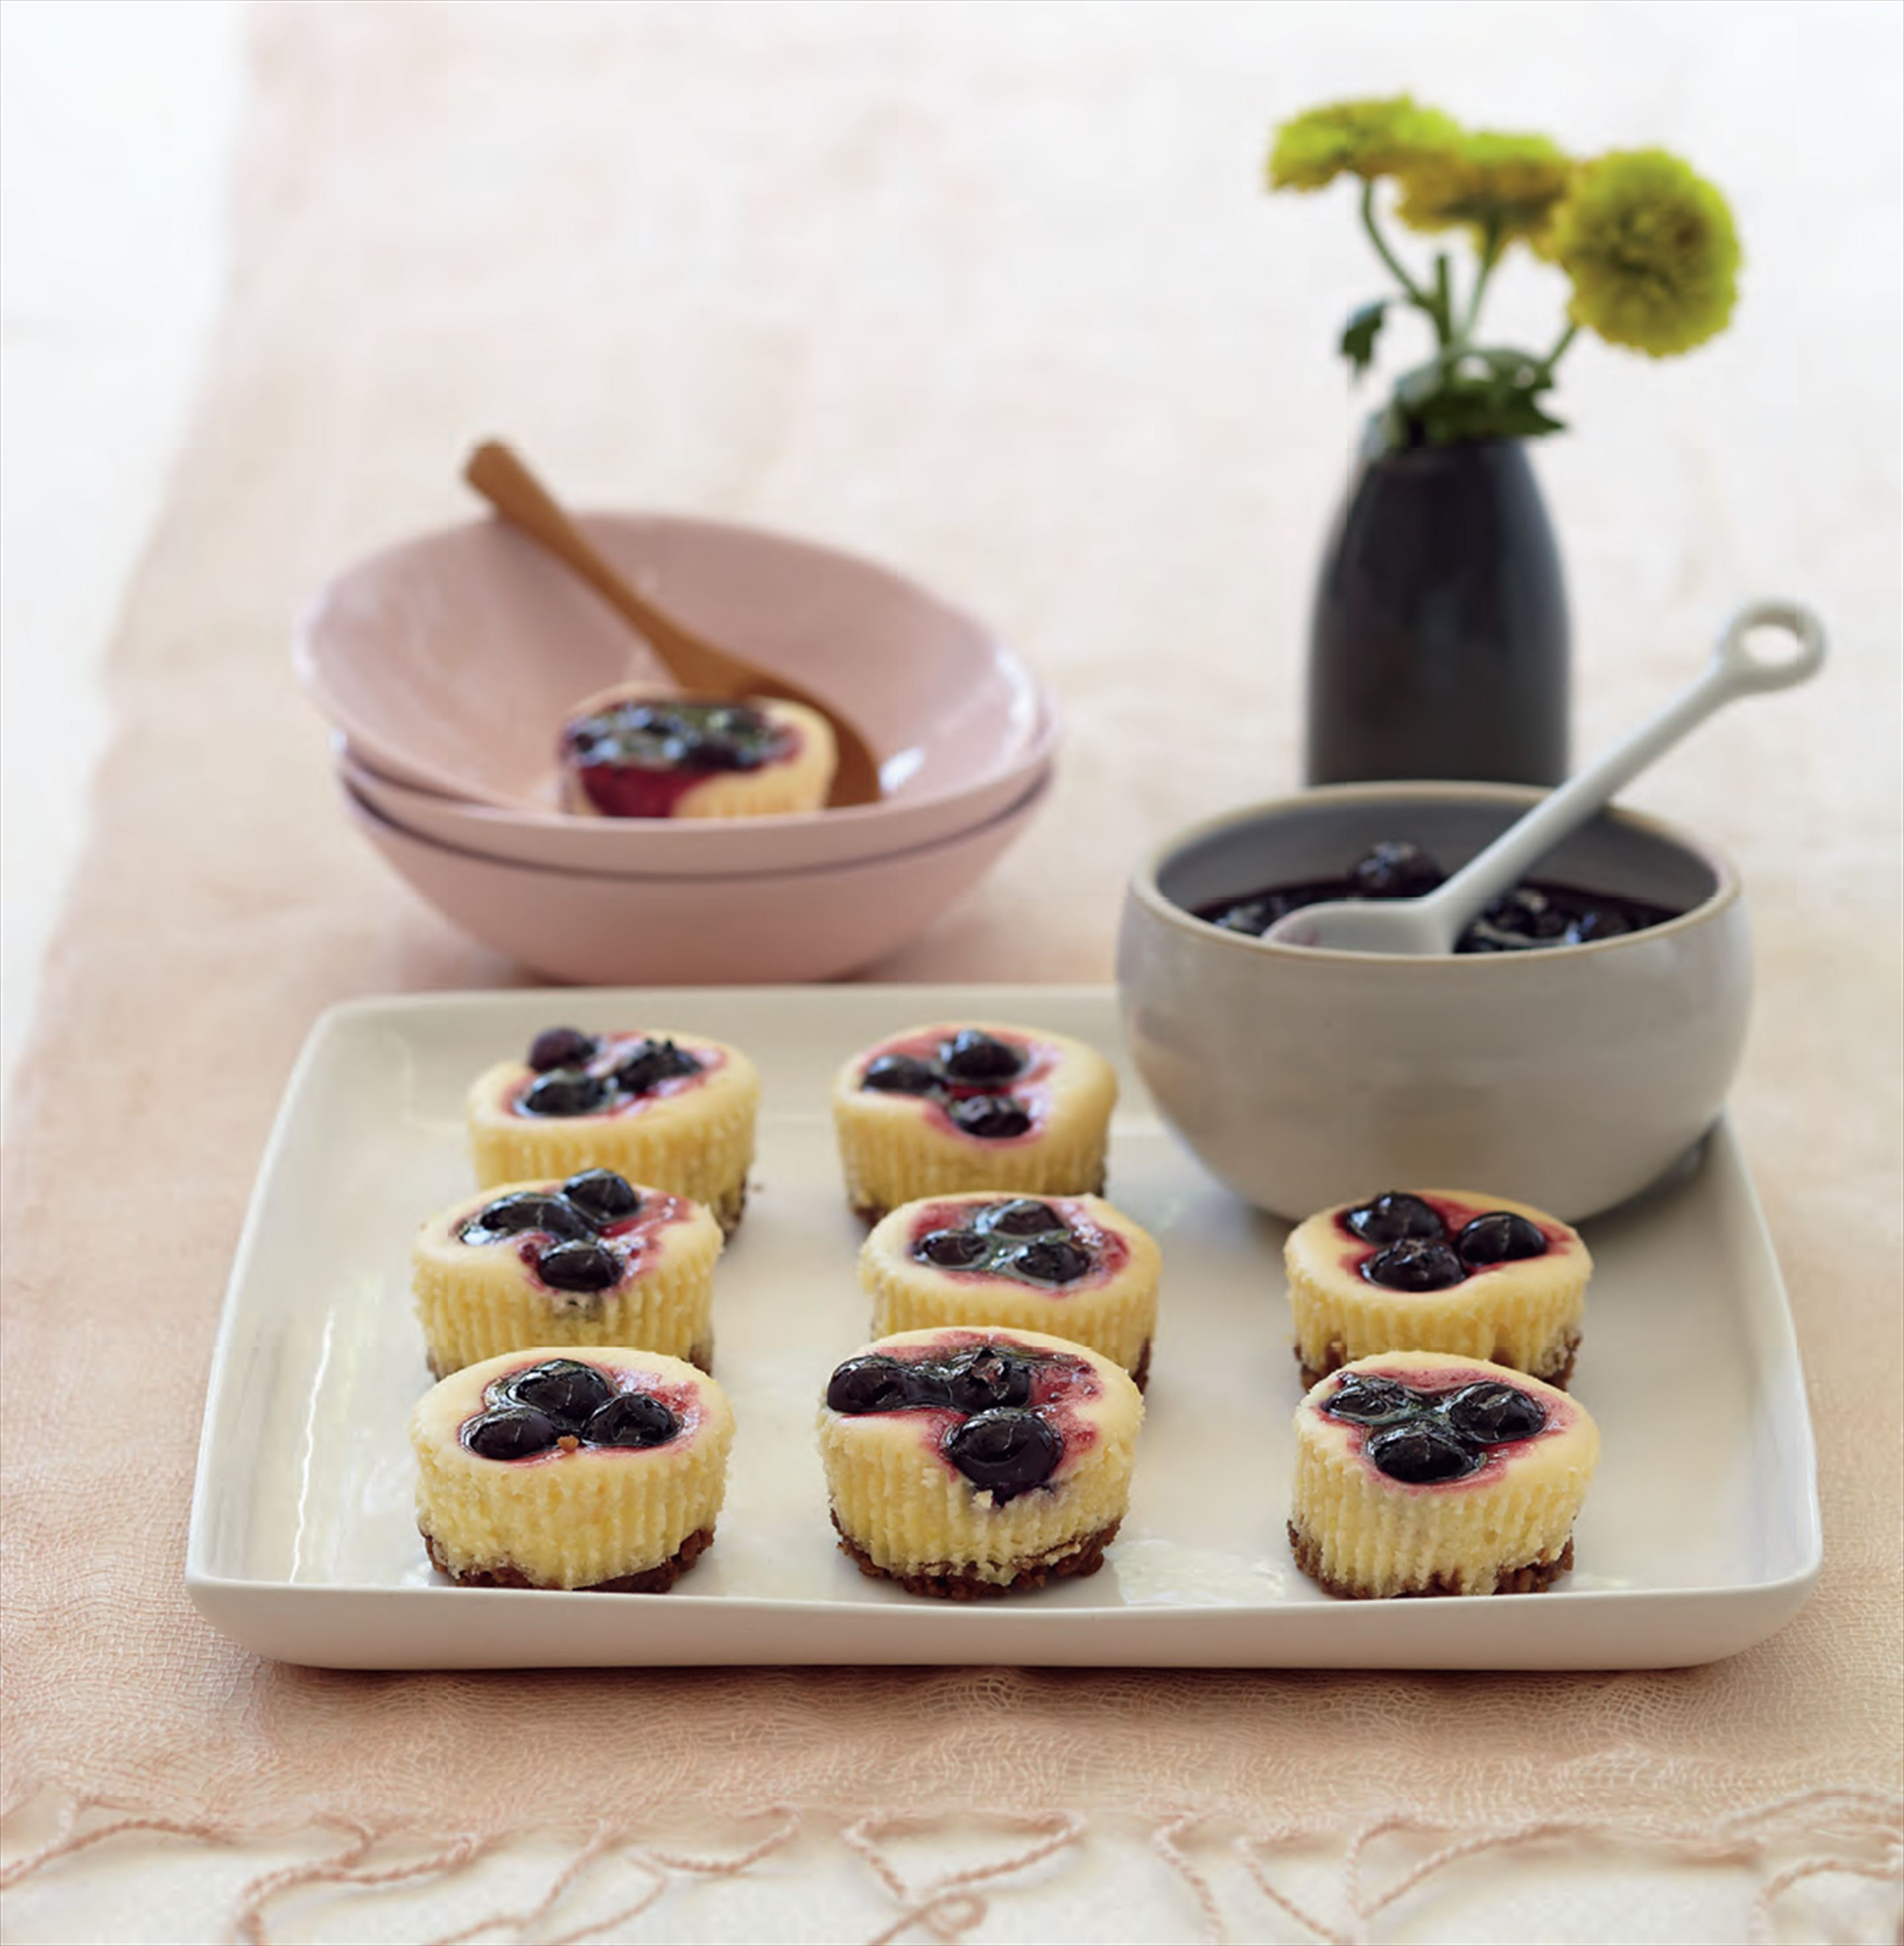 Lemon cheesecakes with blueberry sauce